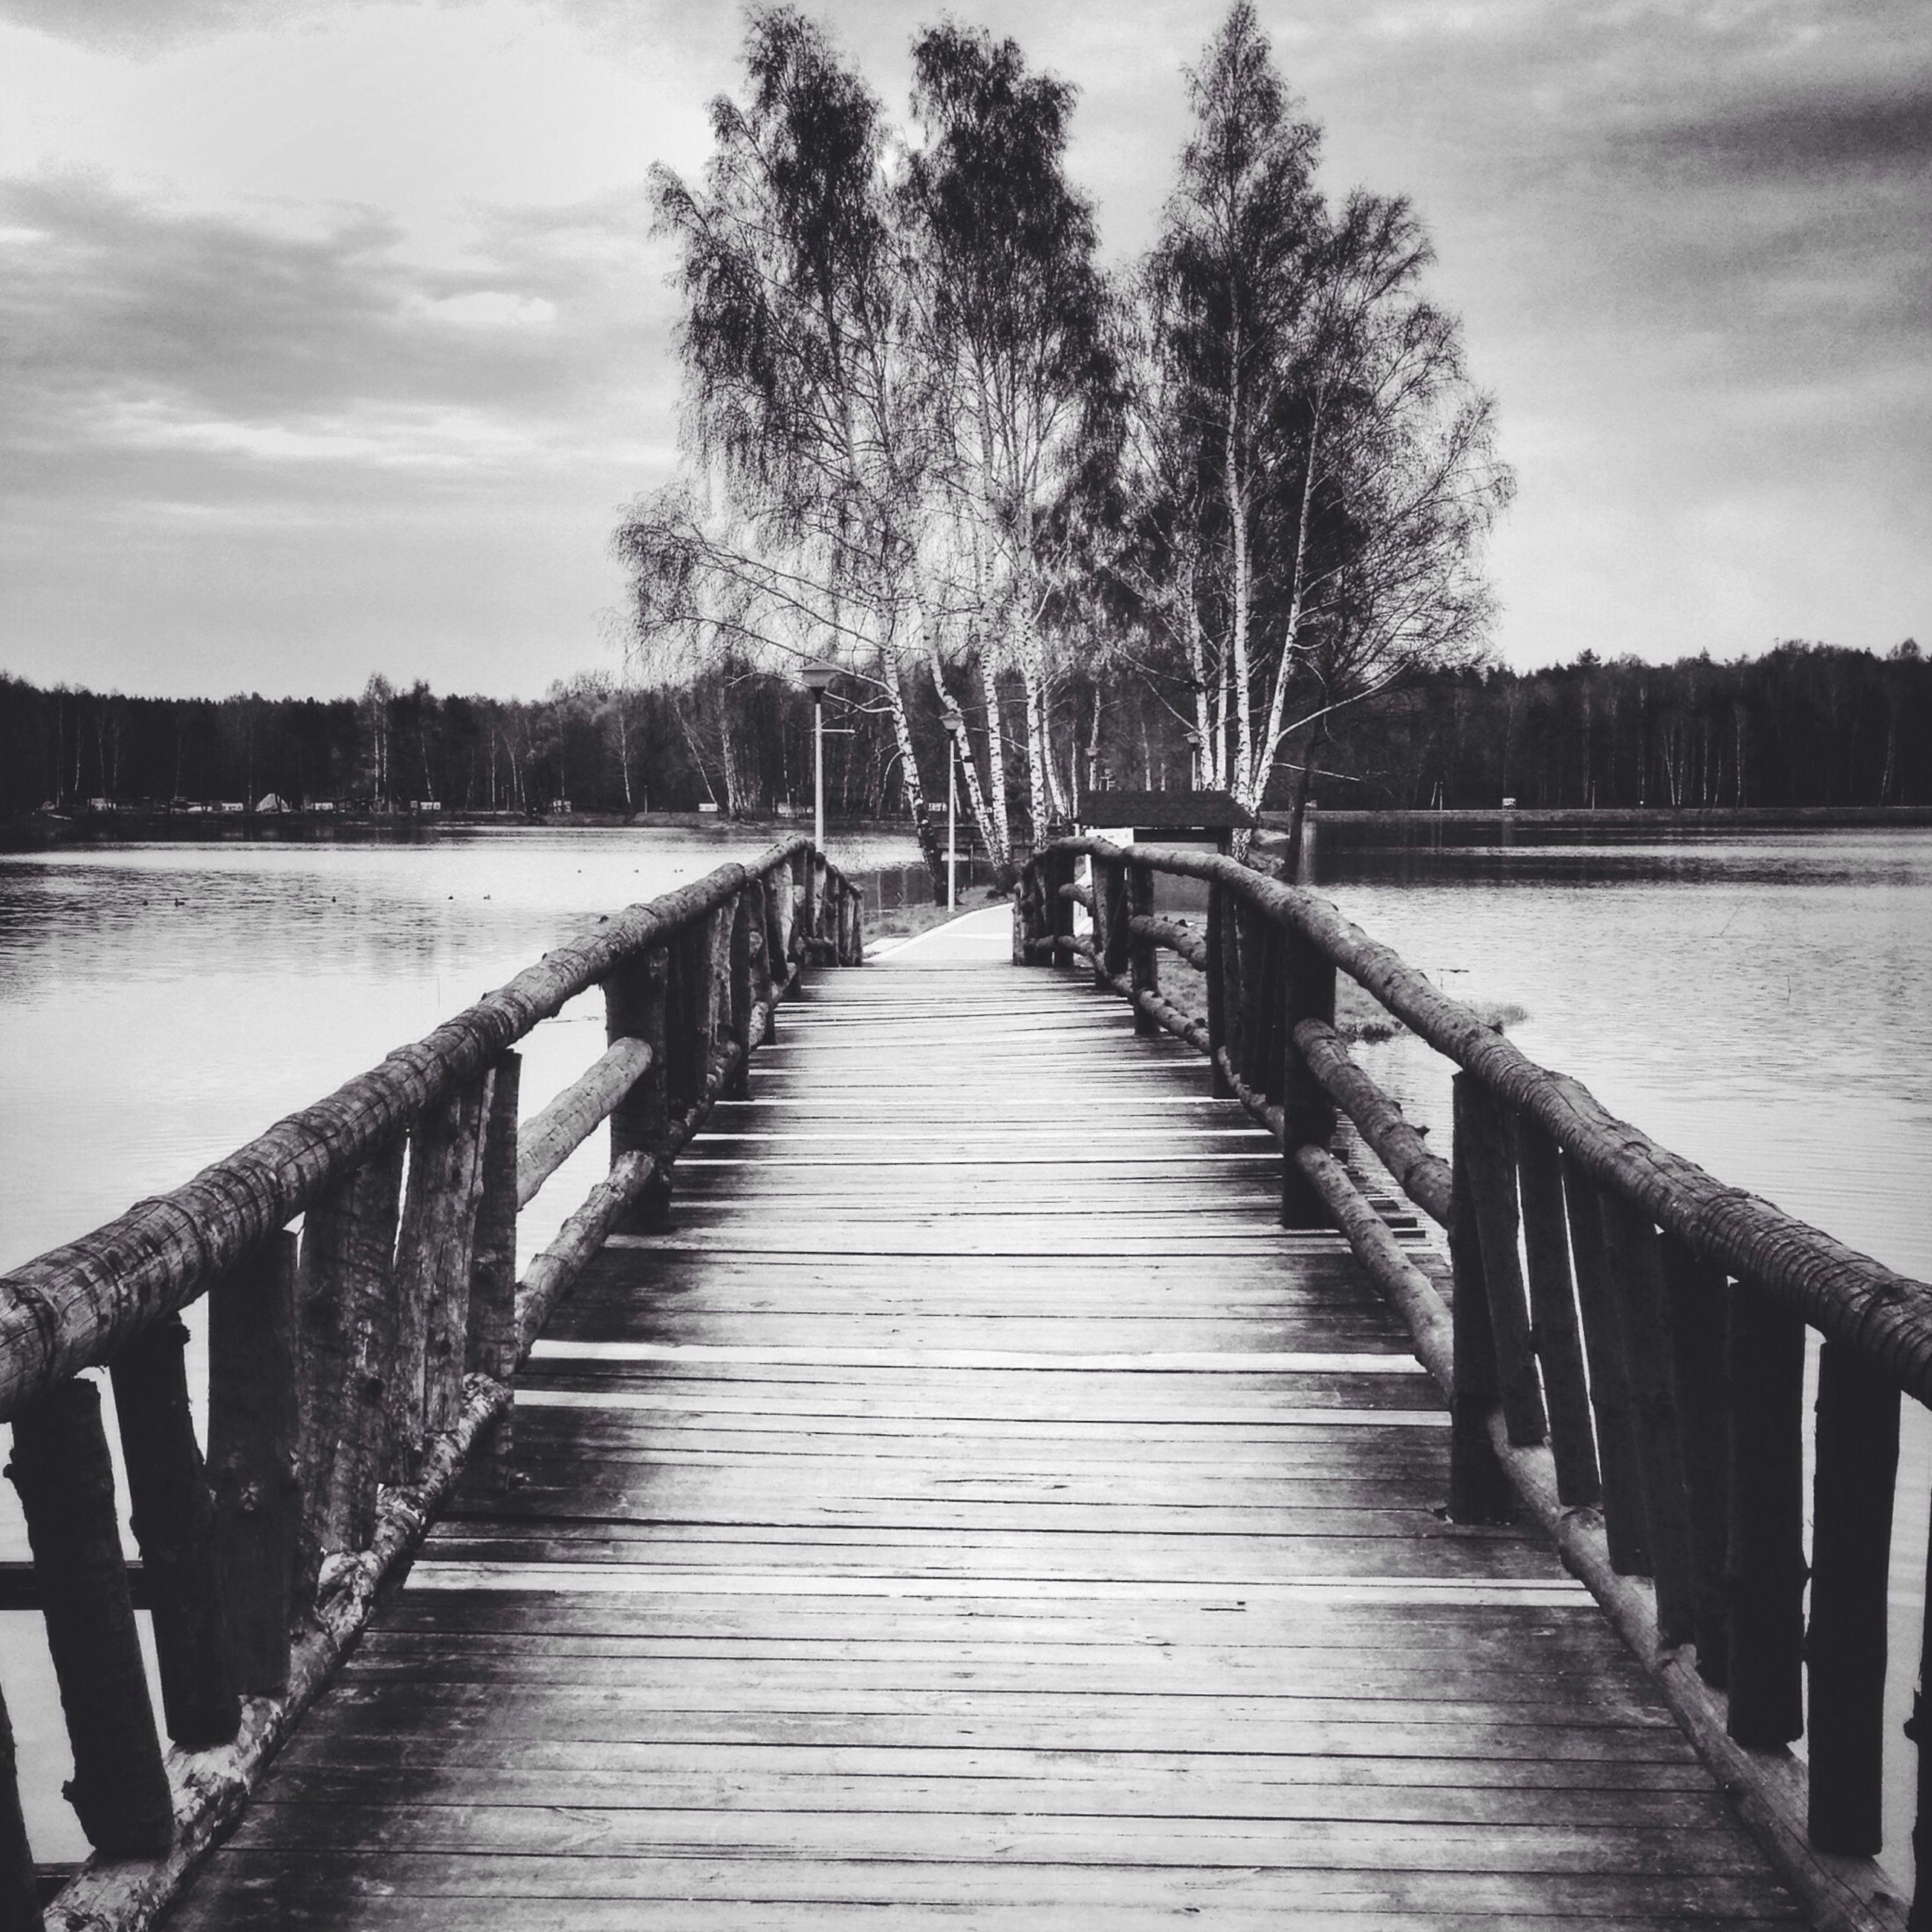 water, built structure, the way forward, railing, architecture, pier, sky, diminishing perspective, river, bridge - man made structure, tree, footbridge, connection, wood - material, tranquility, nature, vanishing point, tranquil scene, long, lake